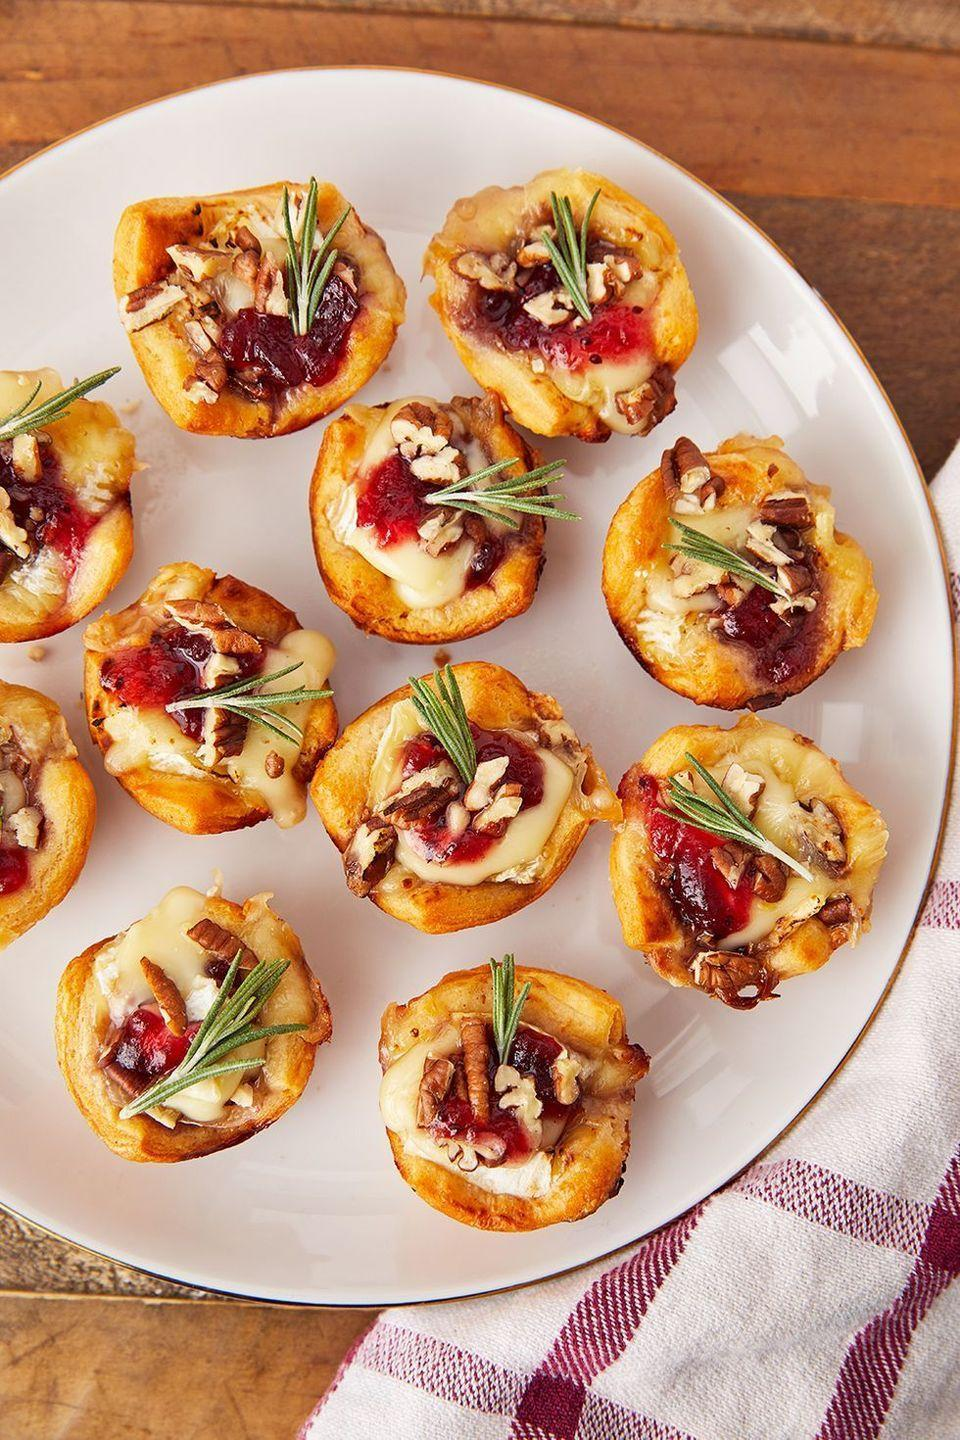 "<p>The perfect party appetizer.</p><p>Get the recipe from <a href=""https://www.delish.com/cooking/recipe-ideas/recipes/a56610/cranberry-brie-bites-recipe/"" rel=""nofollow noopener"" target=""_blank"" data-ylk=""slk:Delish"" class=""link rapid-noclick-resp"">Delish</a>. </p>"